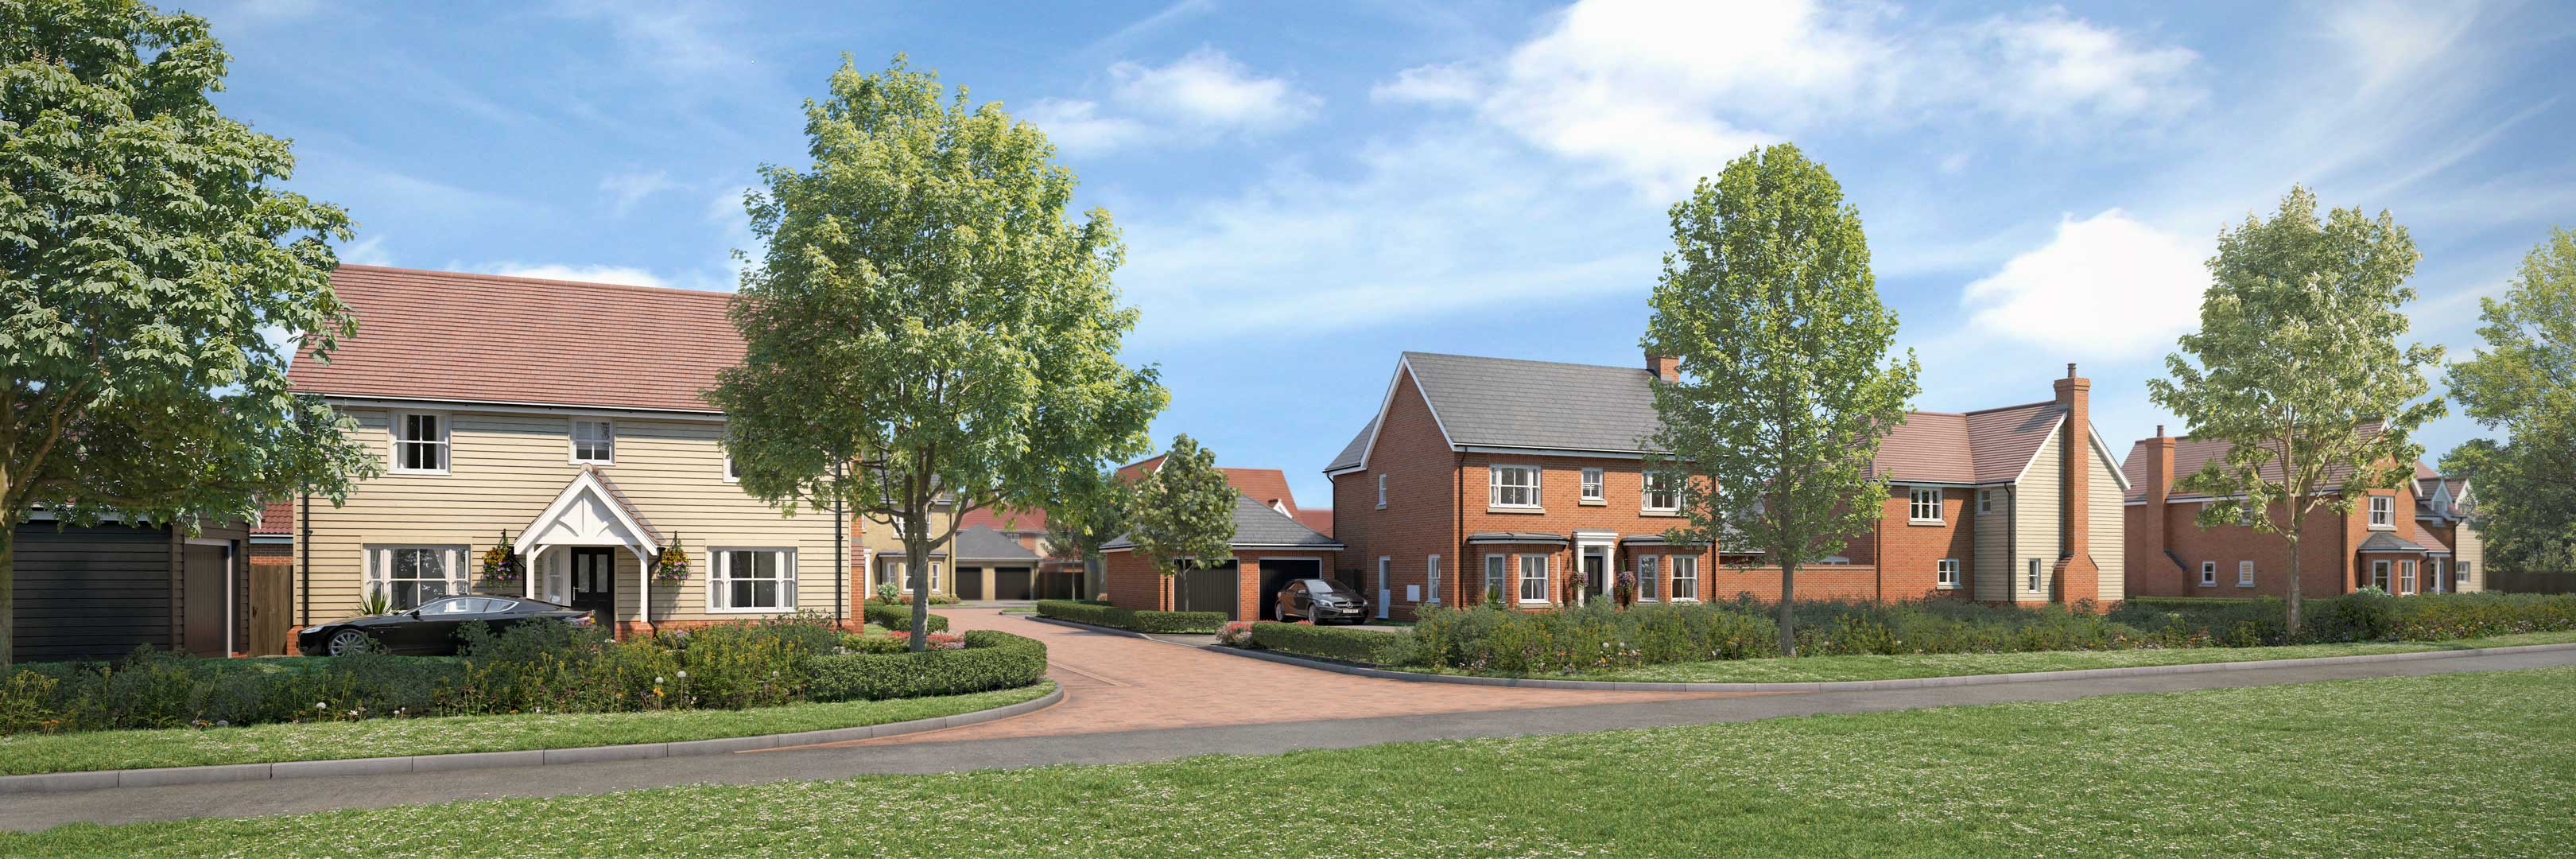 Millers Green Show Home opens on Saturday & Sunday, 6th & 7th April at Weeley Heath